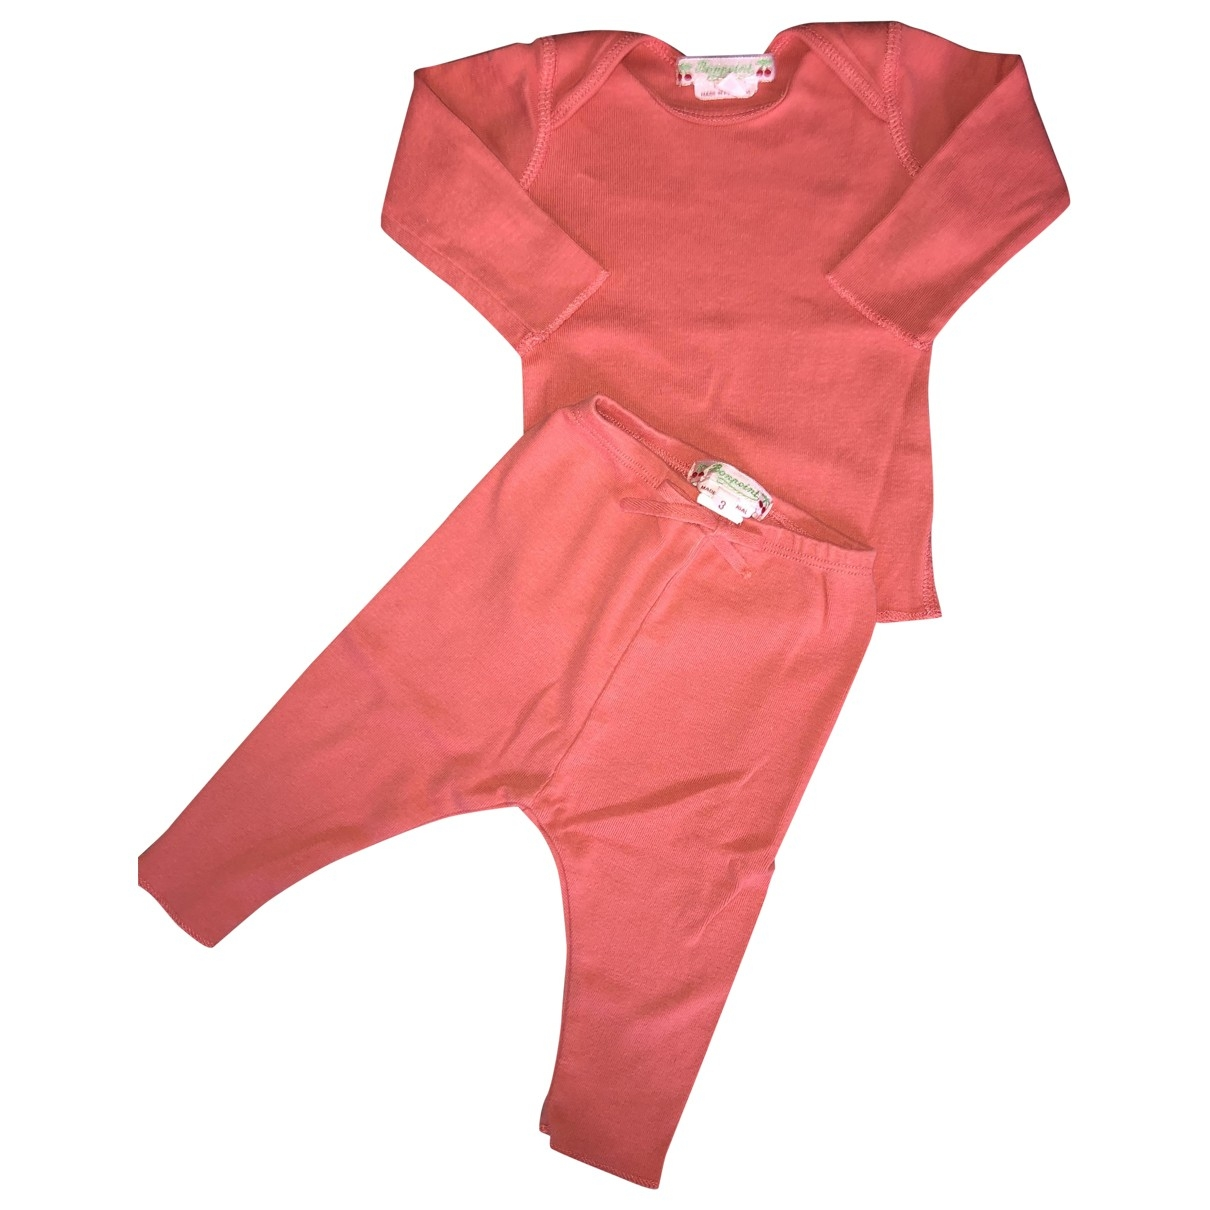 Bonpoint \N Pink Cotton Outfits for Kids 3 months - up to 60cm FR